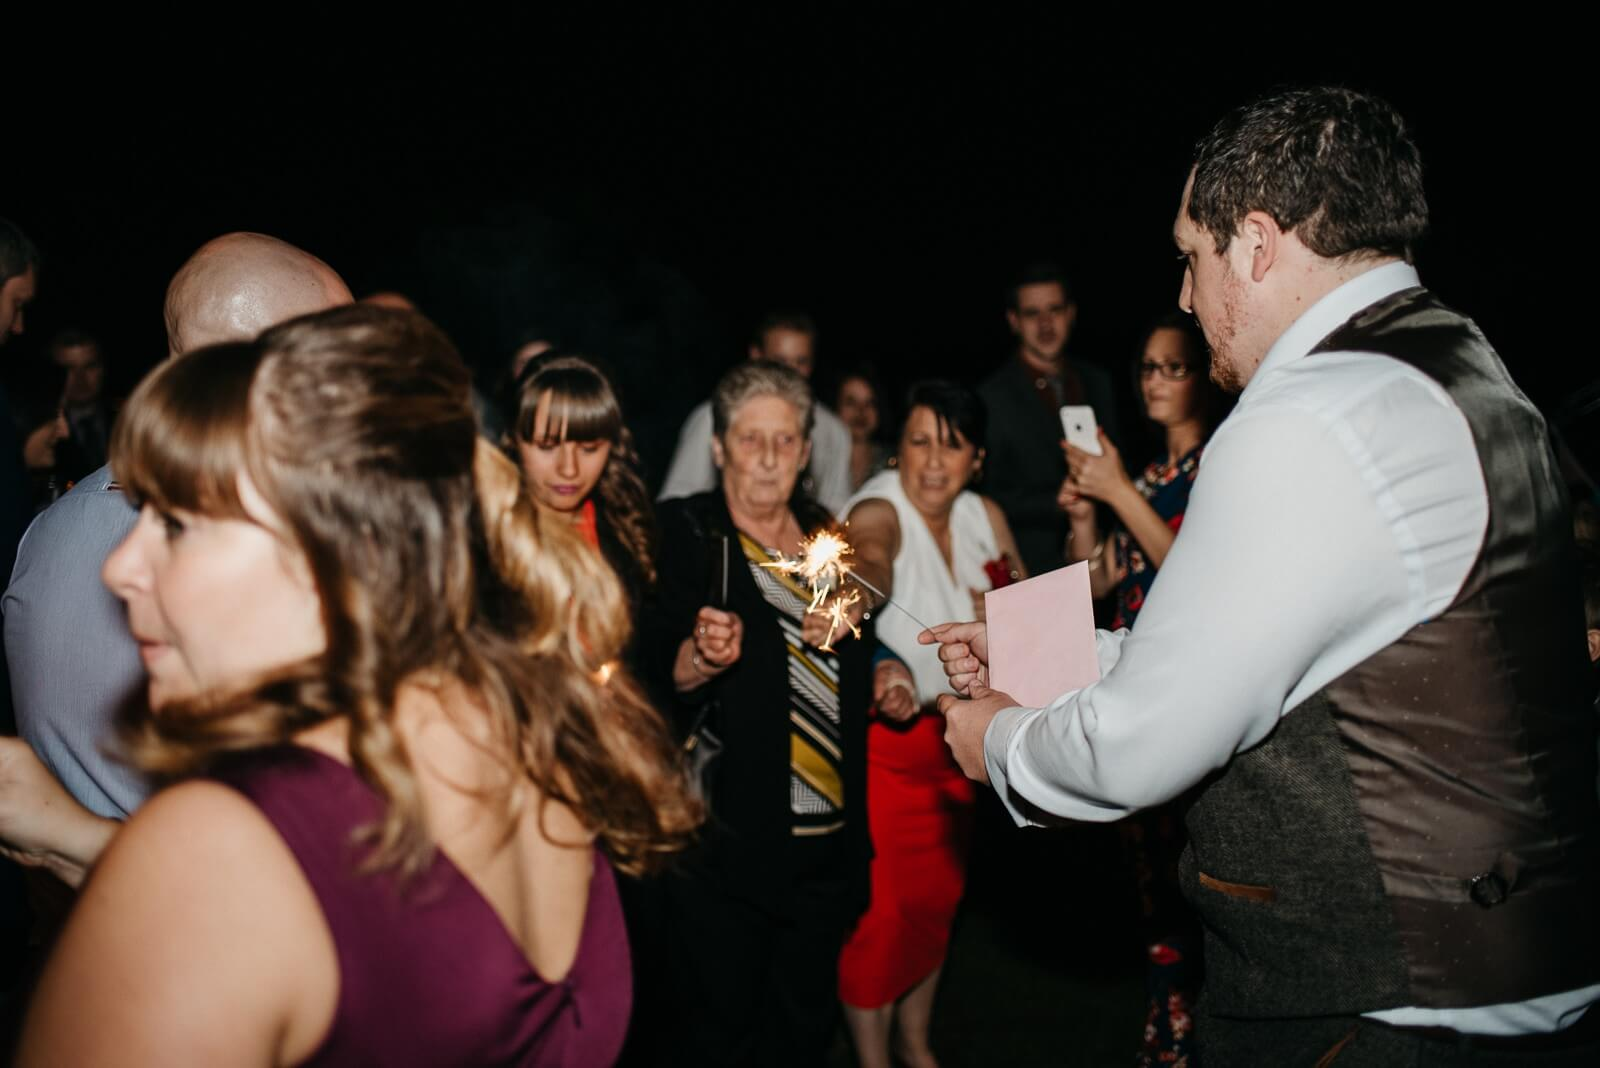 Guests lighting sparklers at Autumn alternative wedding in Cardiff